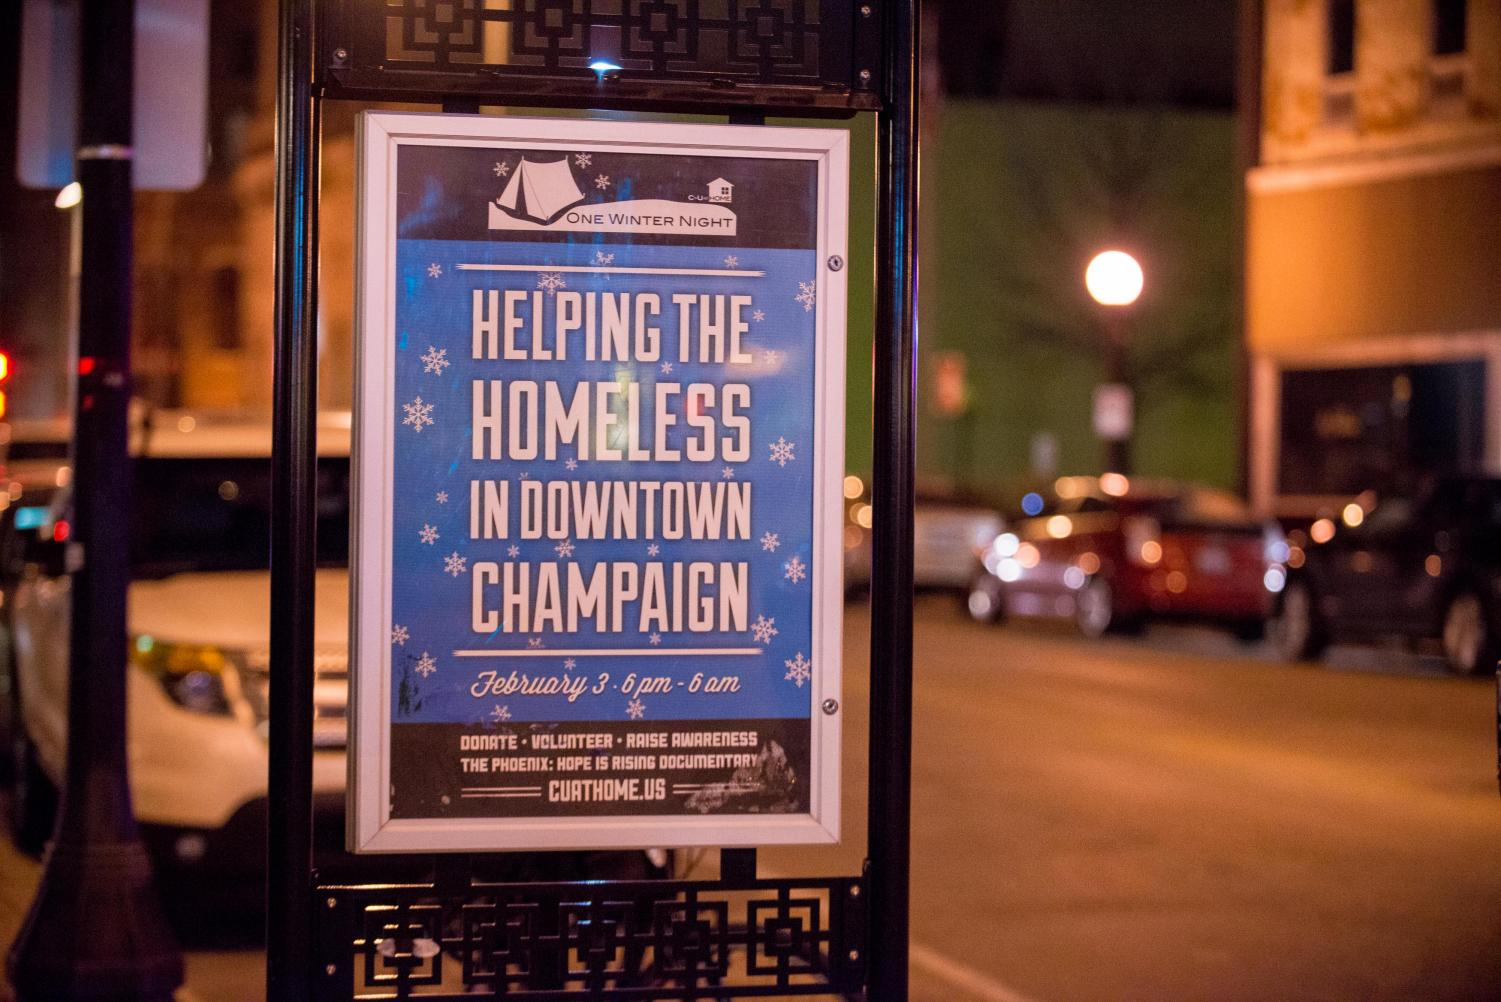 One Winter Night aims to raise awareness for the homeless community in Champaign-Urbana.